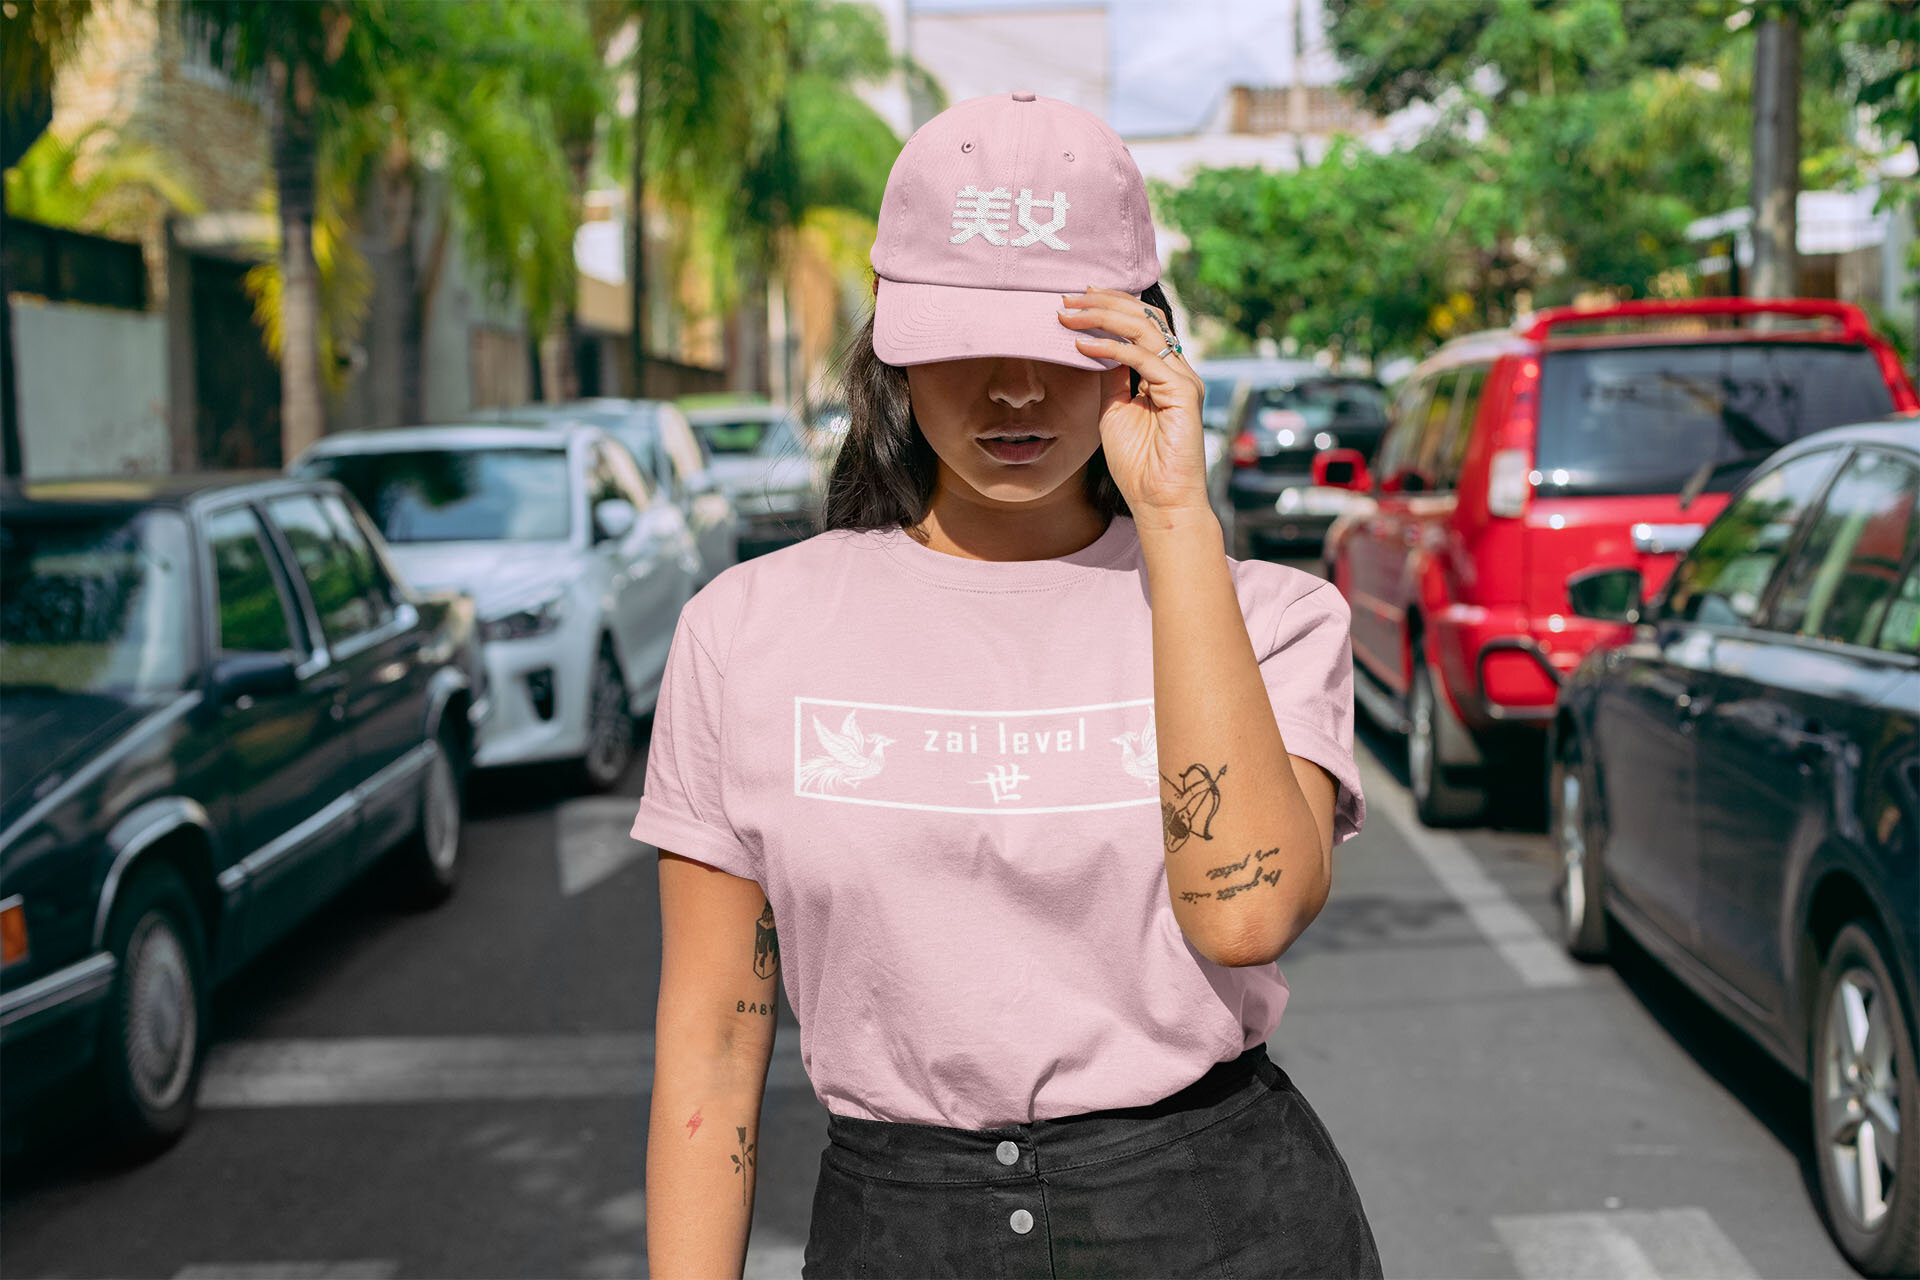 mockup-of-a-woman-standing-in-the-street-wearing-a-t-shirt-and-a-dad-hat-28608.jpg